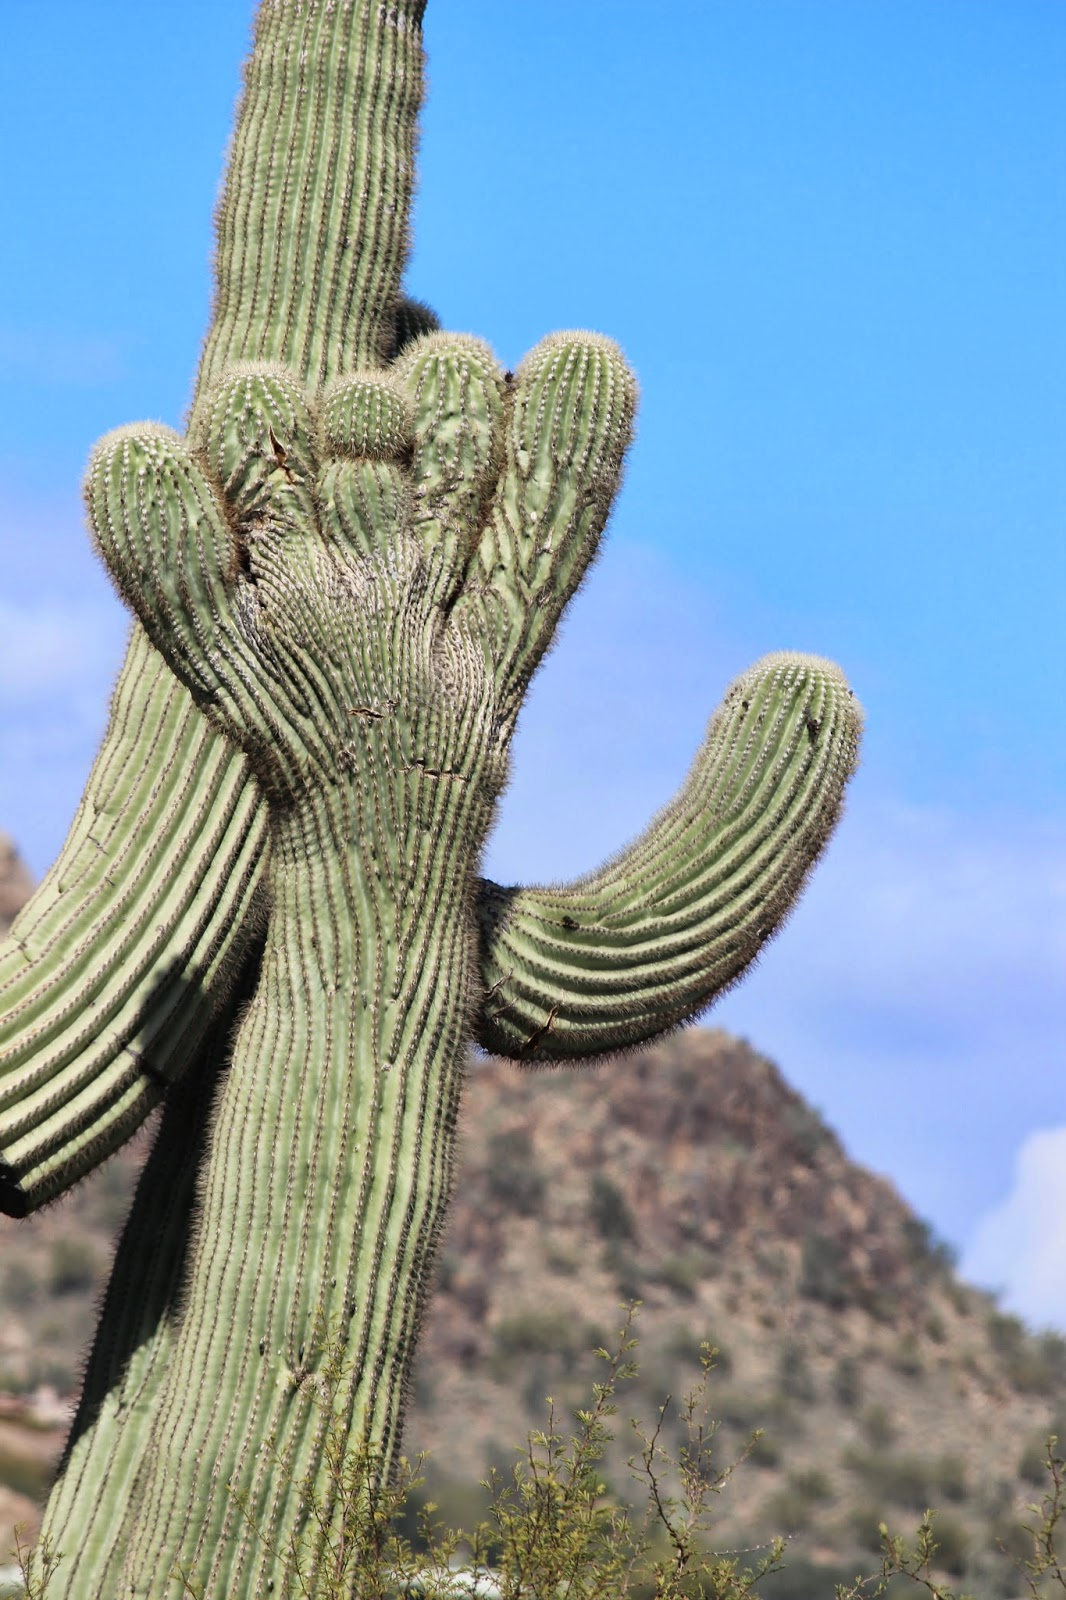 A saguaro cactus with a hand. (Photo by Kristy McCaffrey, author of Into the Land of Shadows.)